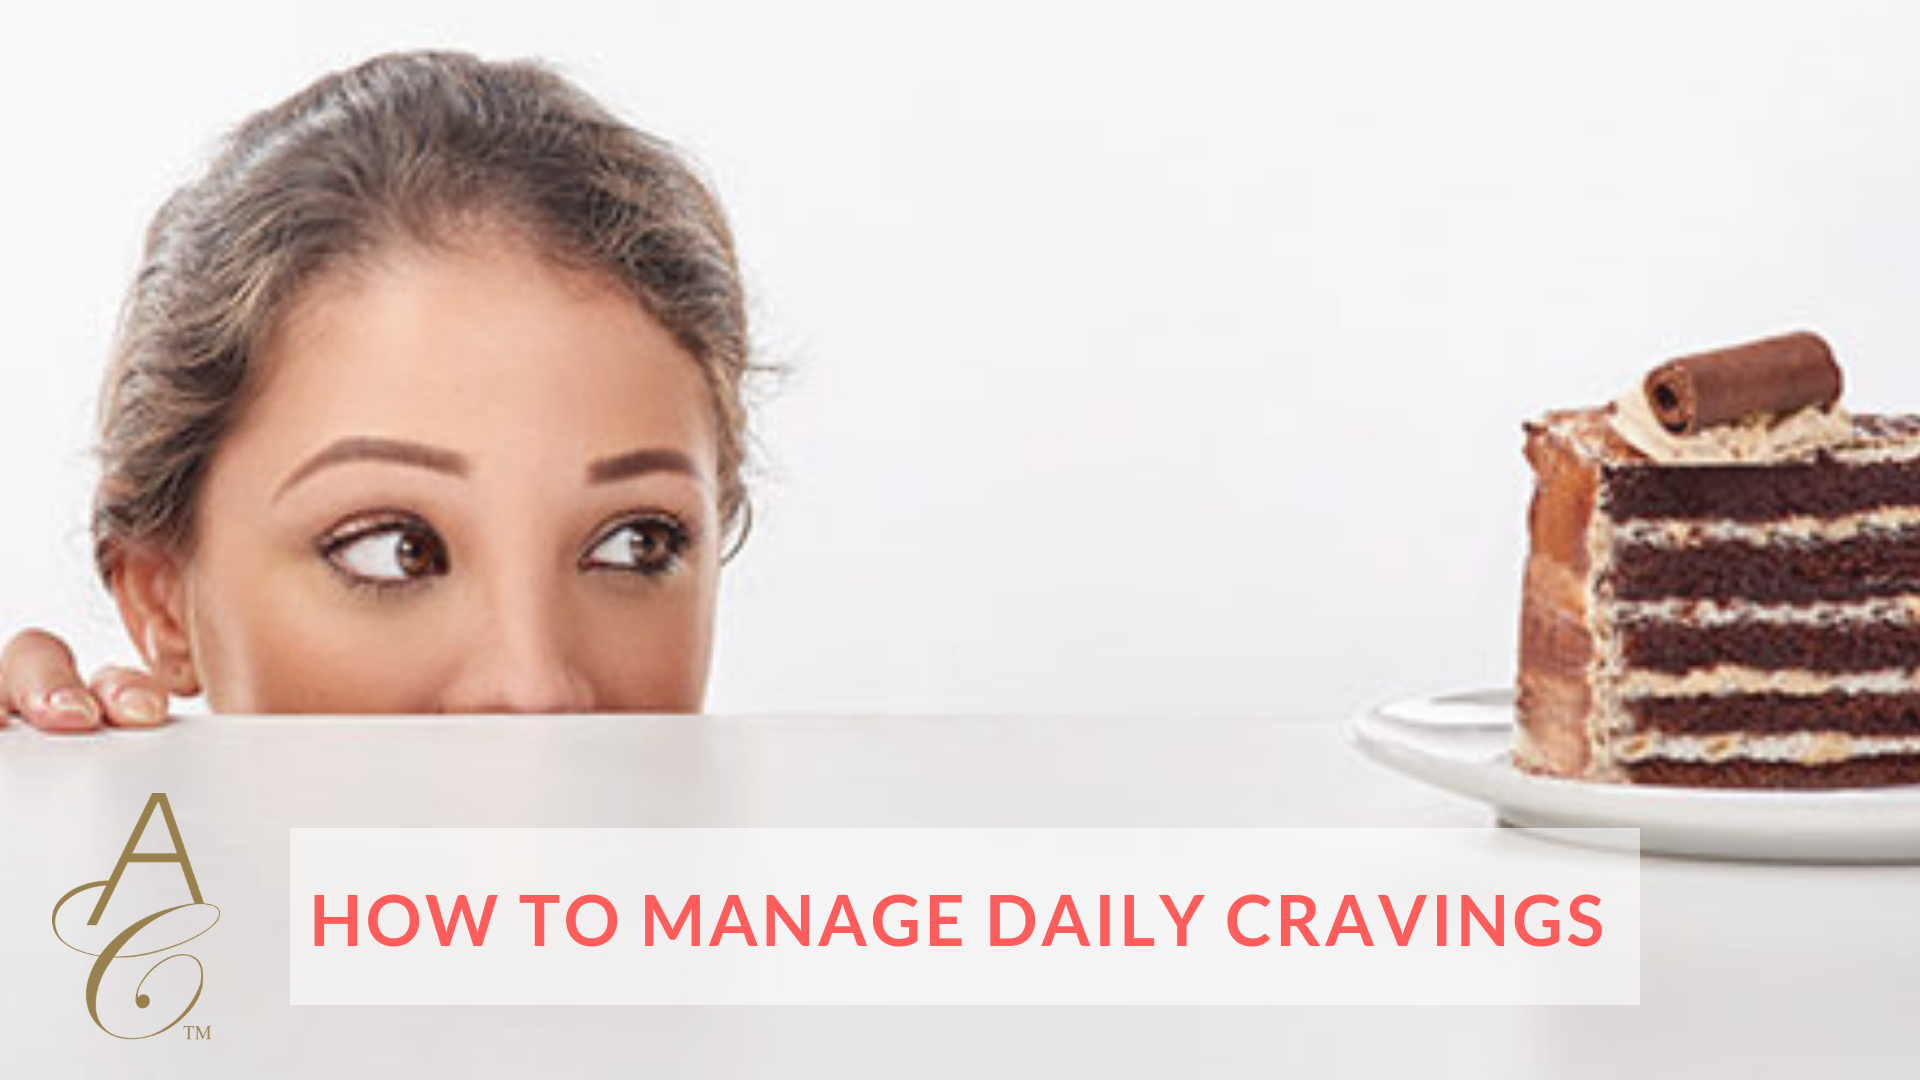 How to manage daily cravings